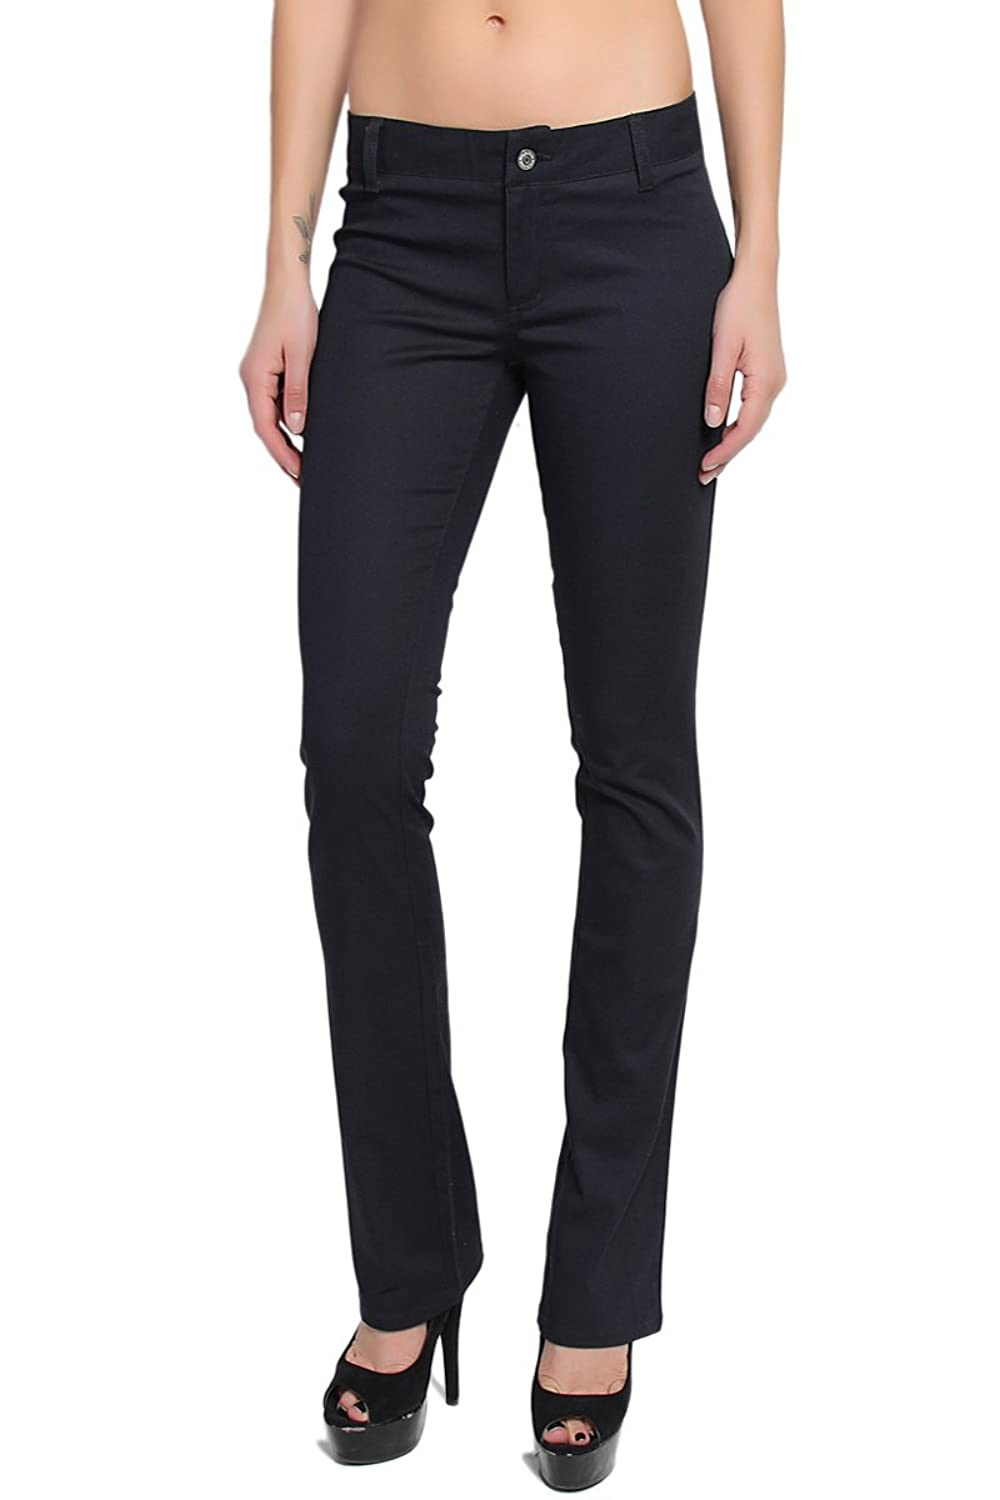 TheMogan Women's Dickies Girl Stretch Twill Simple Pants